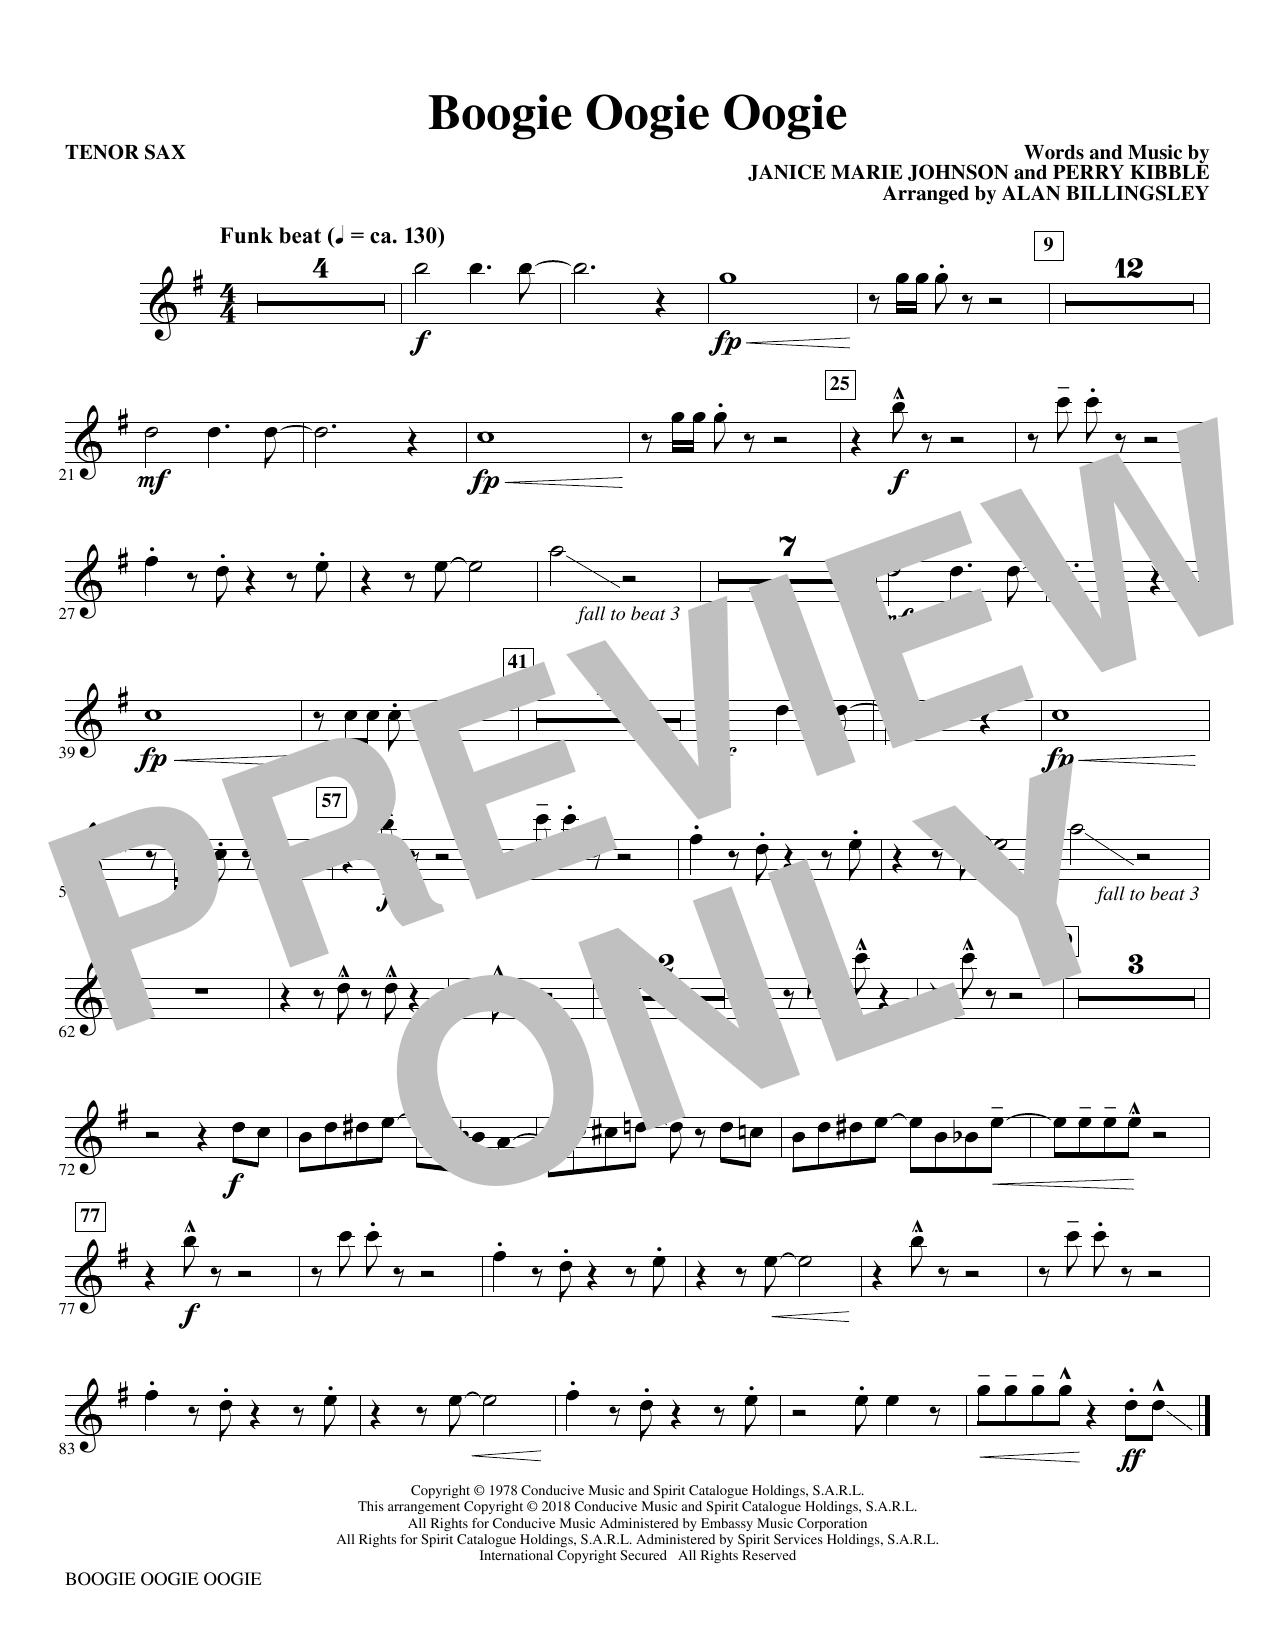 Download A Taste Of Honey 'Boogie Oogie Oogie (arr. Alan Billingsley) - Bb Tenor Saxophone' Digital Sheet Music Notes & Chords and start playing in minutes